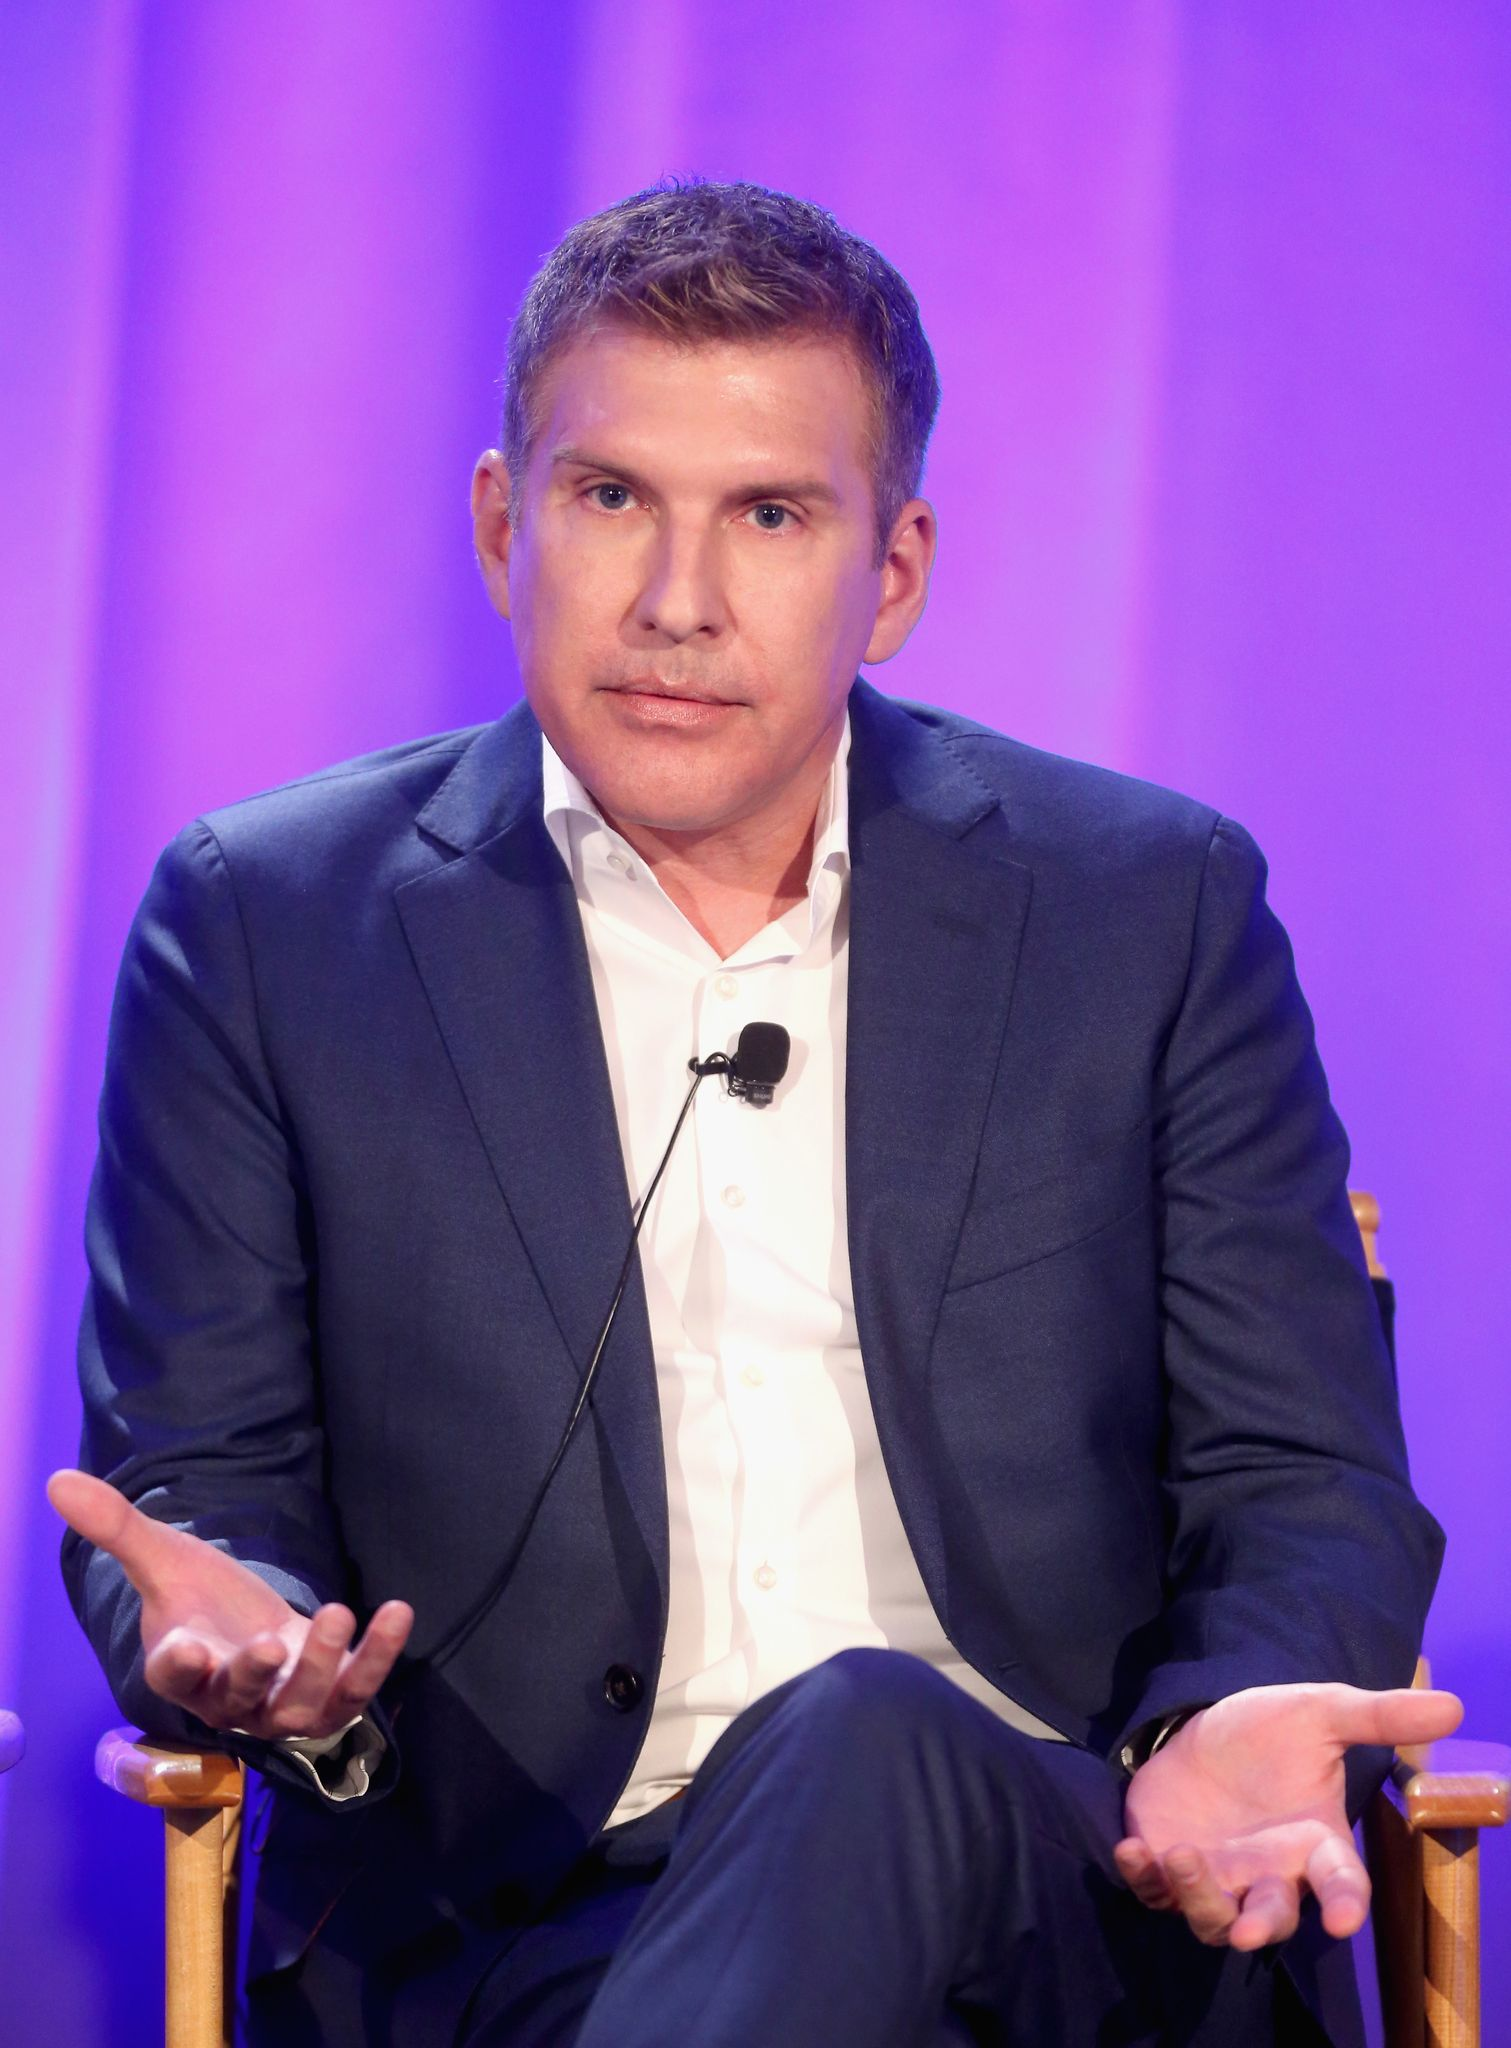 Todd Chrisley speaks during the 'Chrisley Knows Best' panel at the NBCUniversal Summer Press Day on April 1, 2016 in Westlake Village, California | Photo: Getty Images